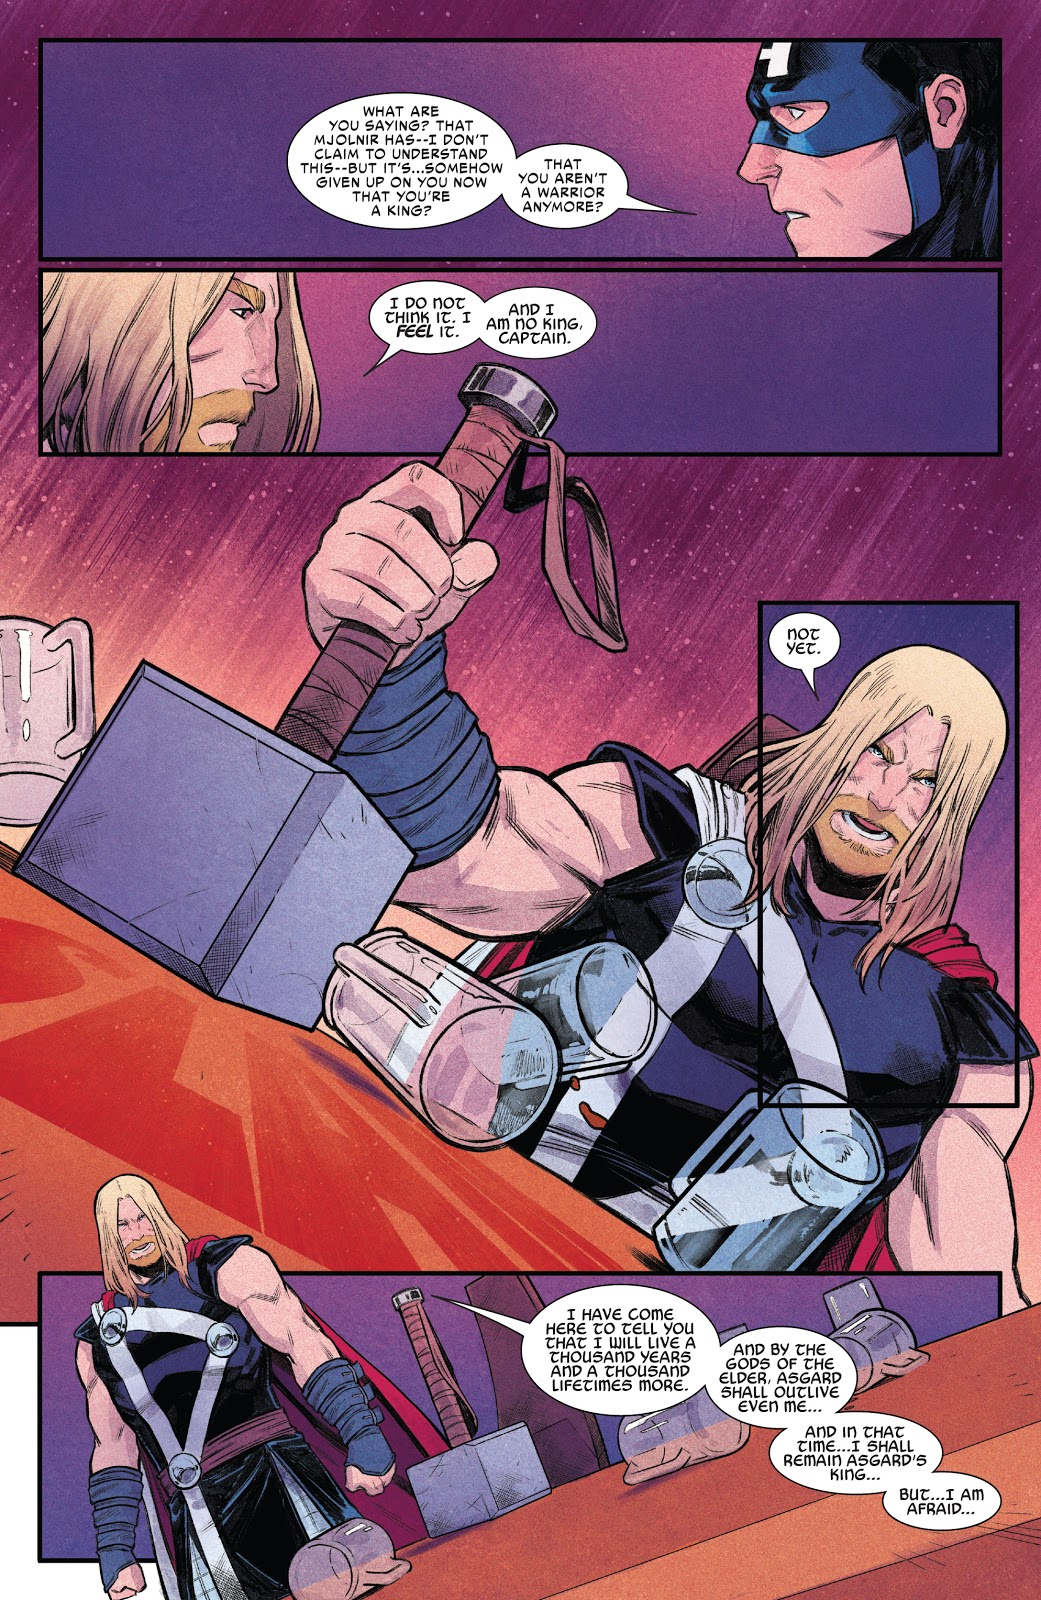 Why King Thor Is Unable To Lift Mjolnir Anymore